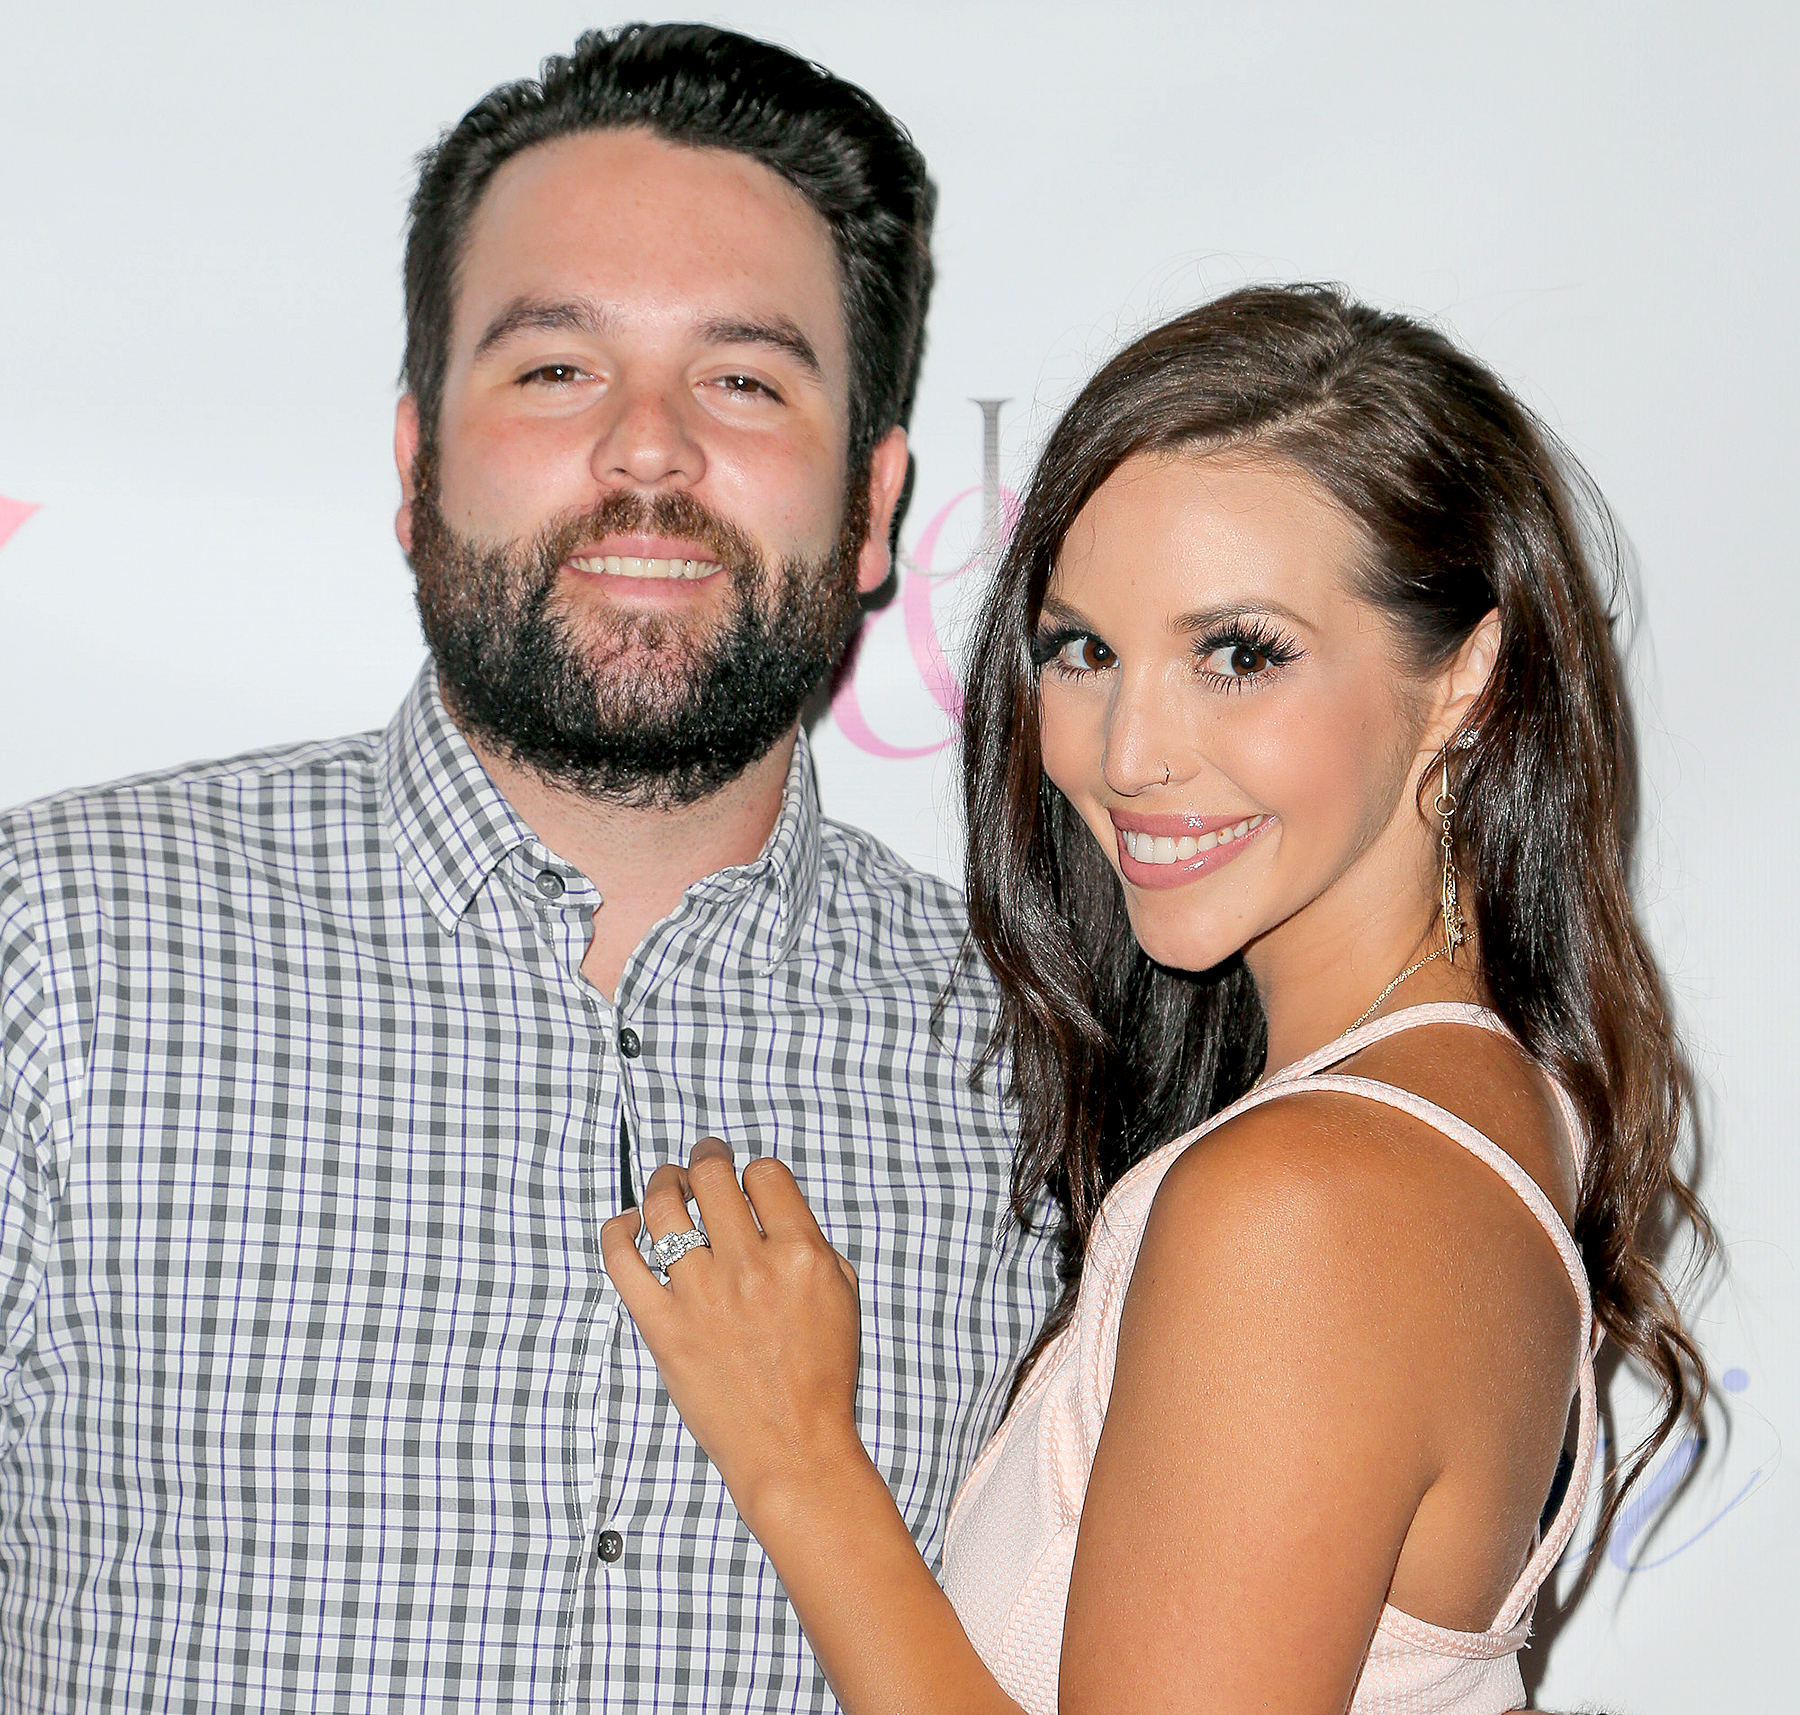 Mike Shay and Scheana Marie attend Katie Maloney's Pucker and Pout launch party at Frederic Fekkai Hair Salon on July 30, 2015 in Beverly Hills, California.